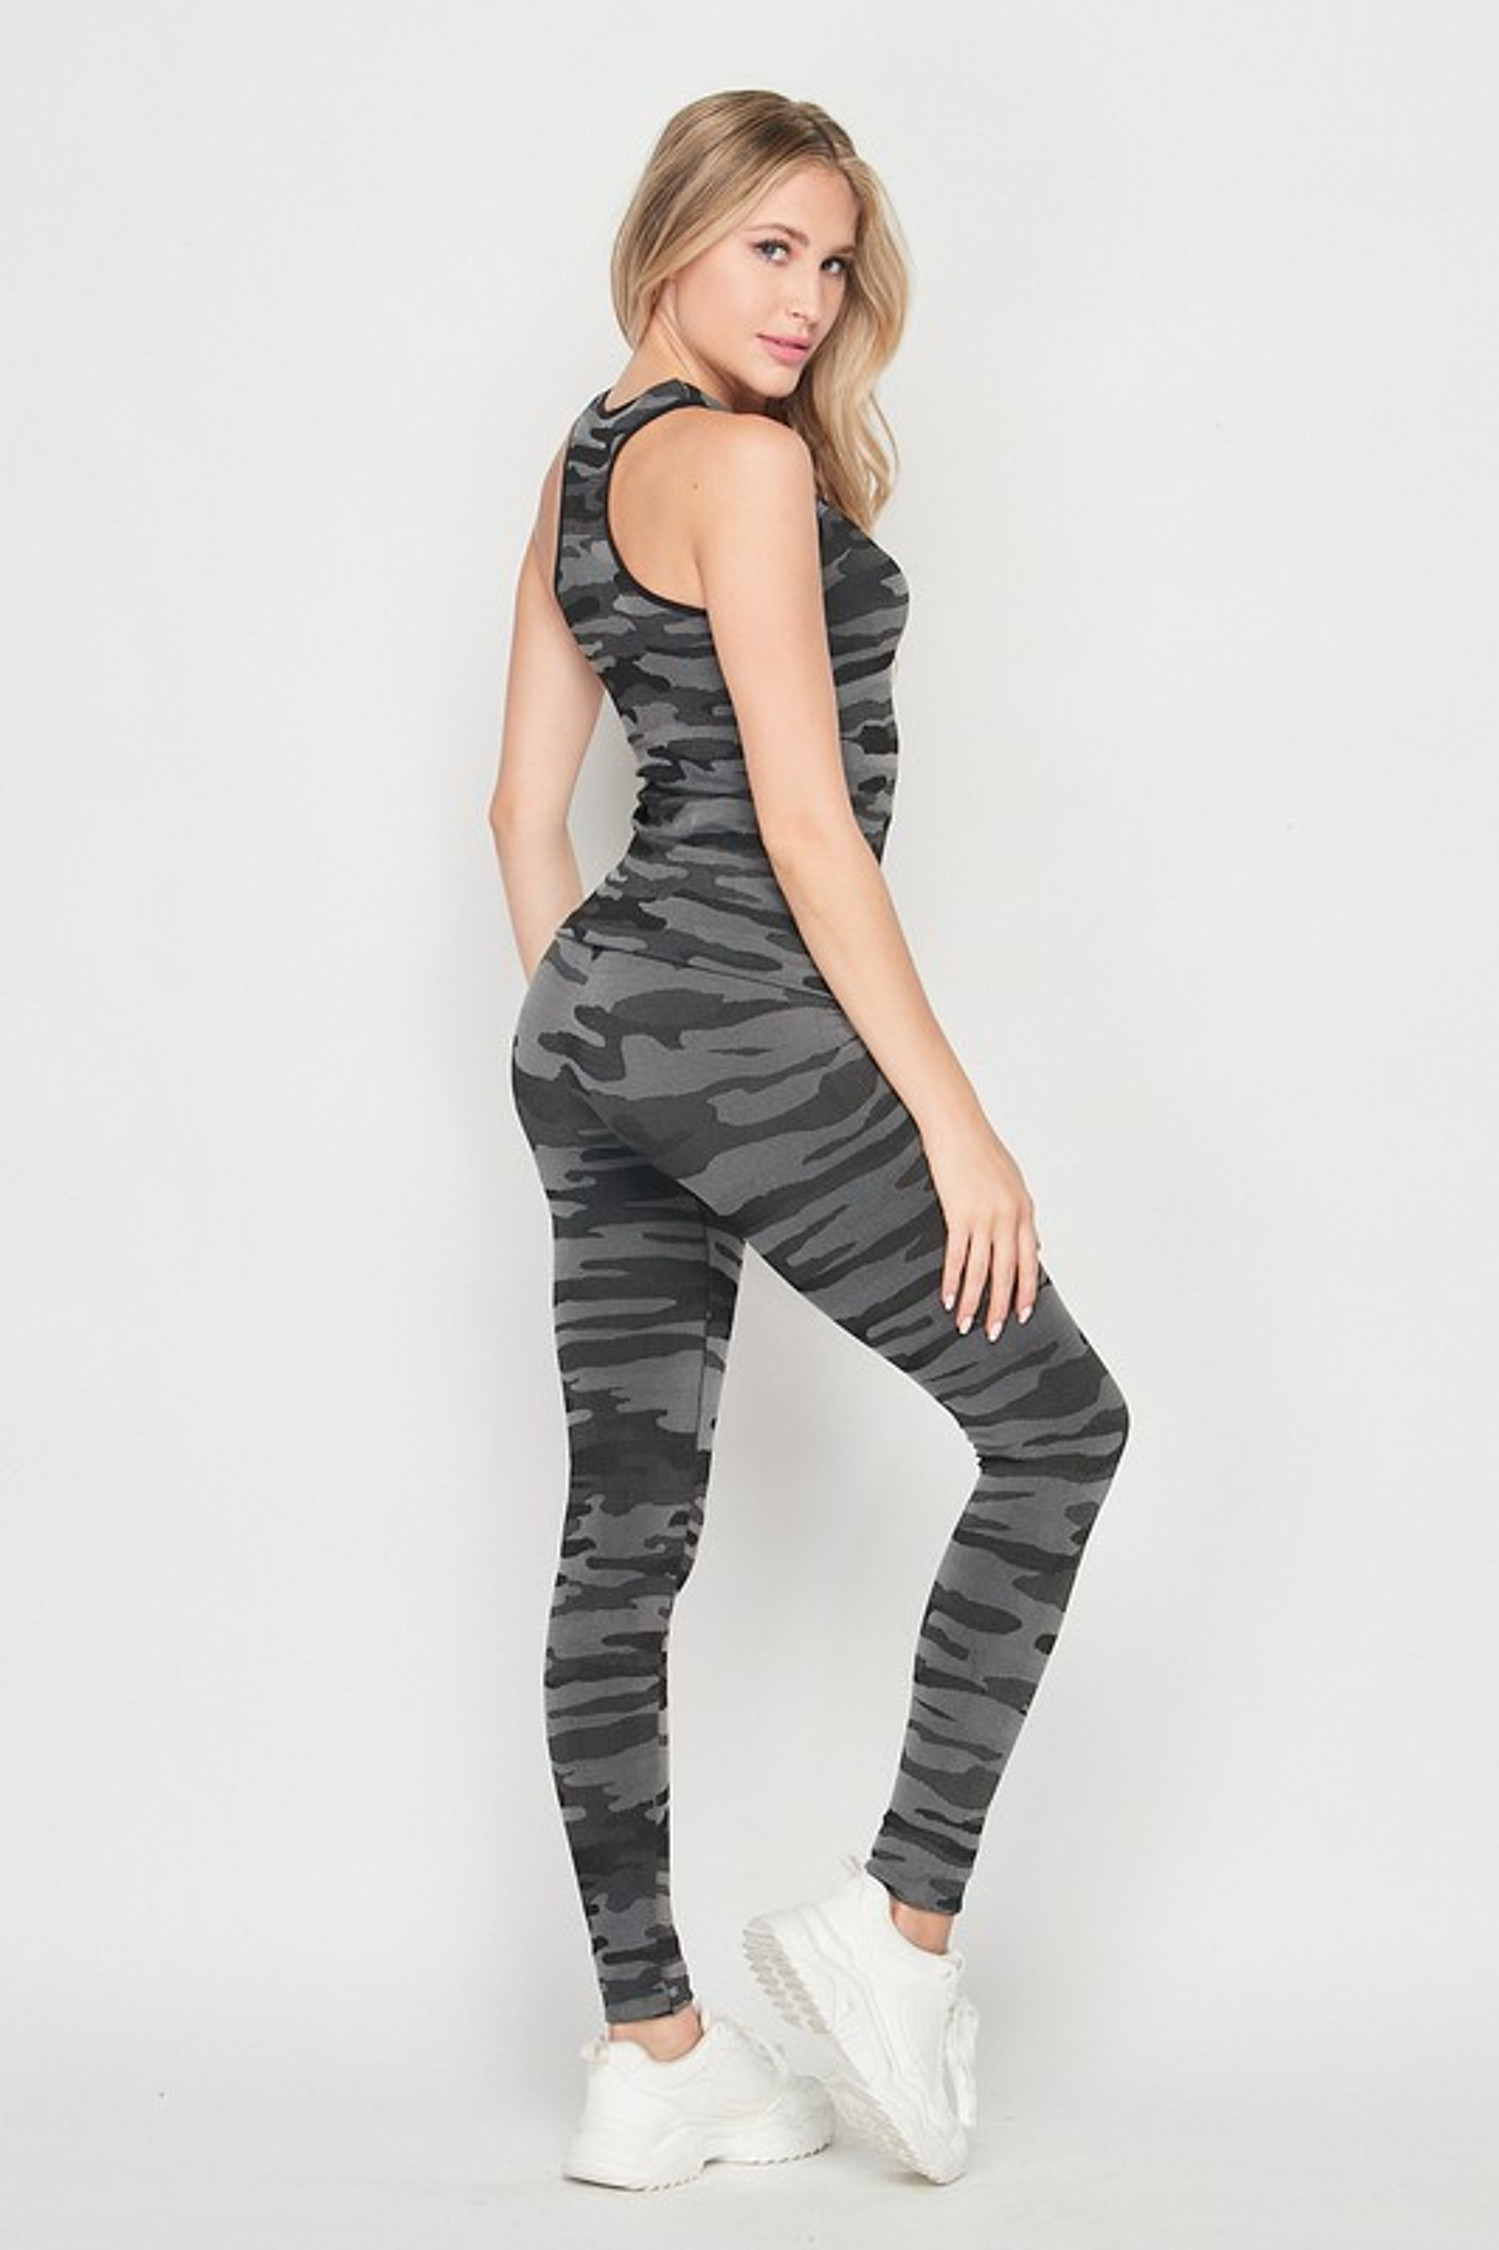 2 Piece Seamless Charcoal Camouflage Tank Top and Legging Set